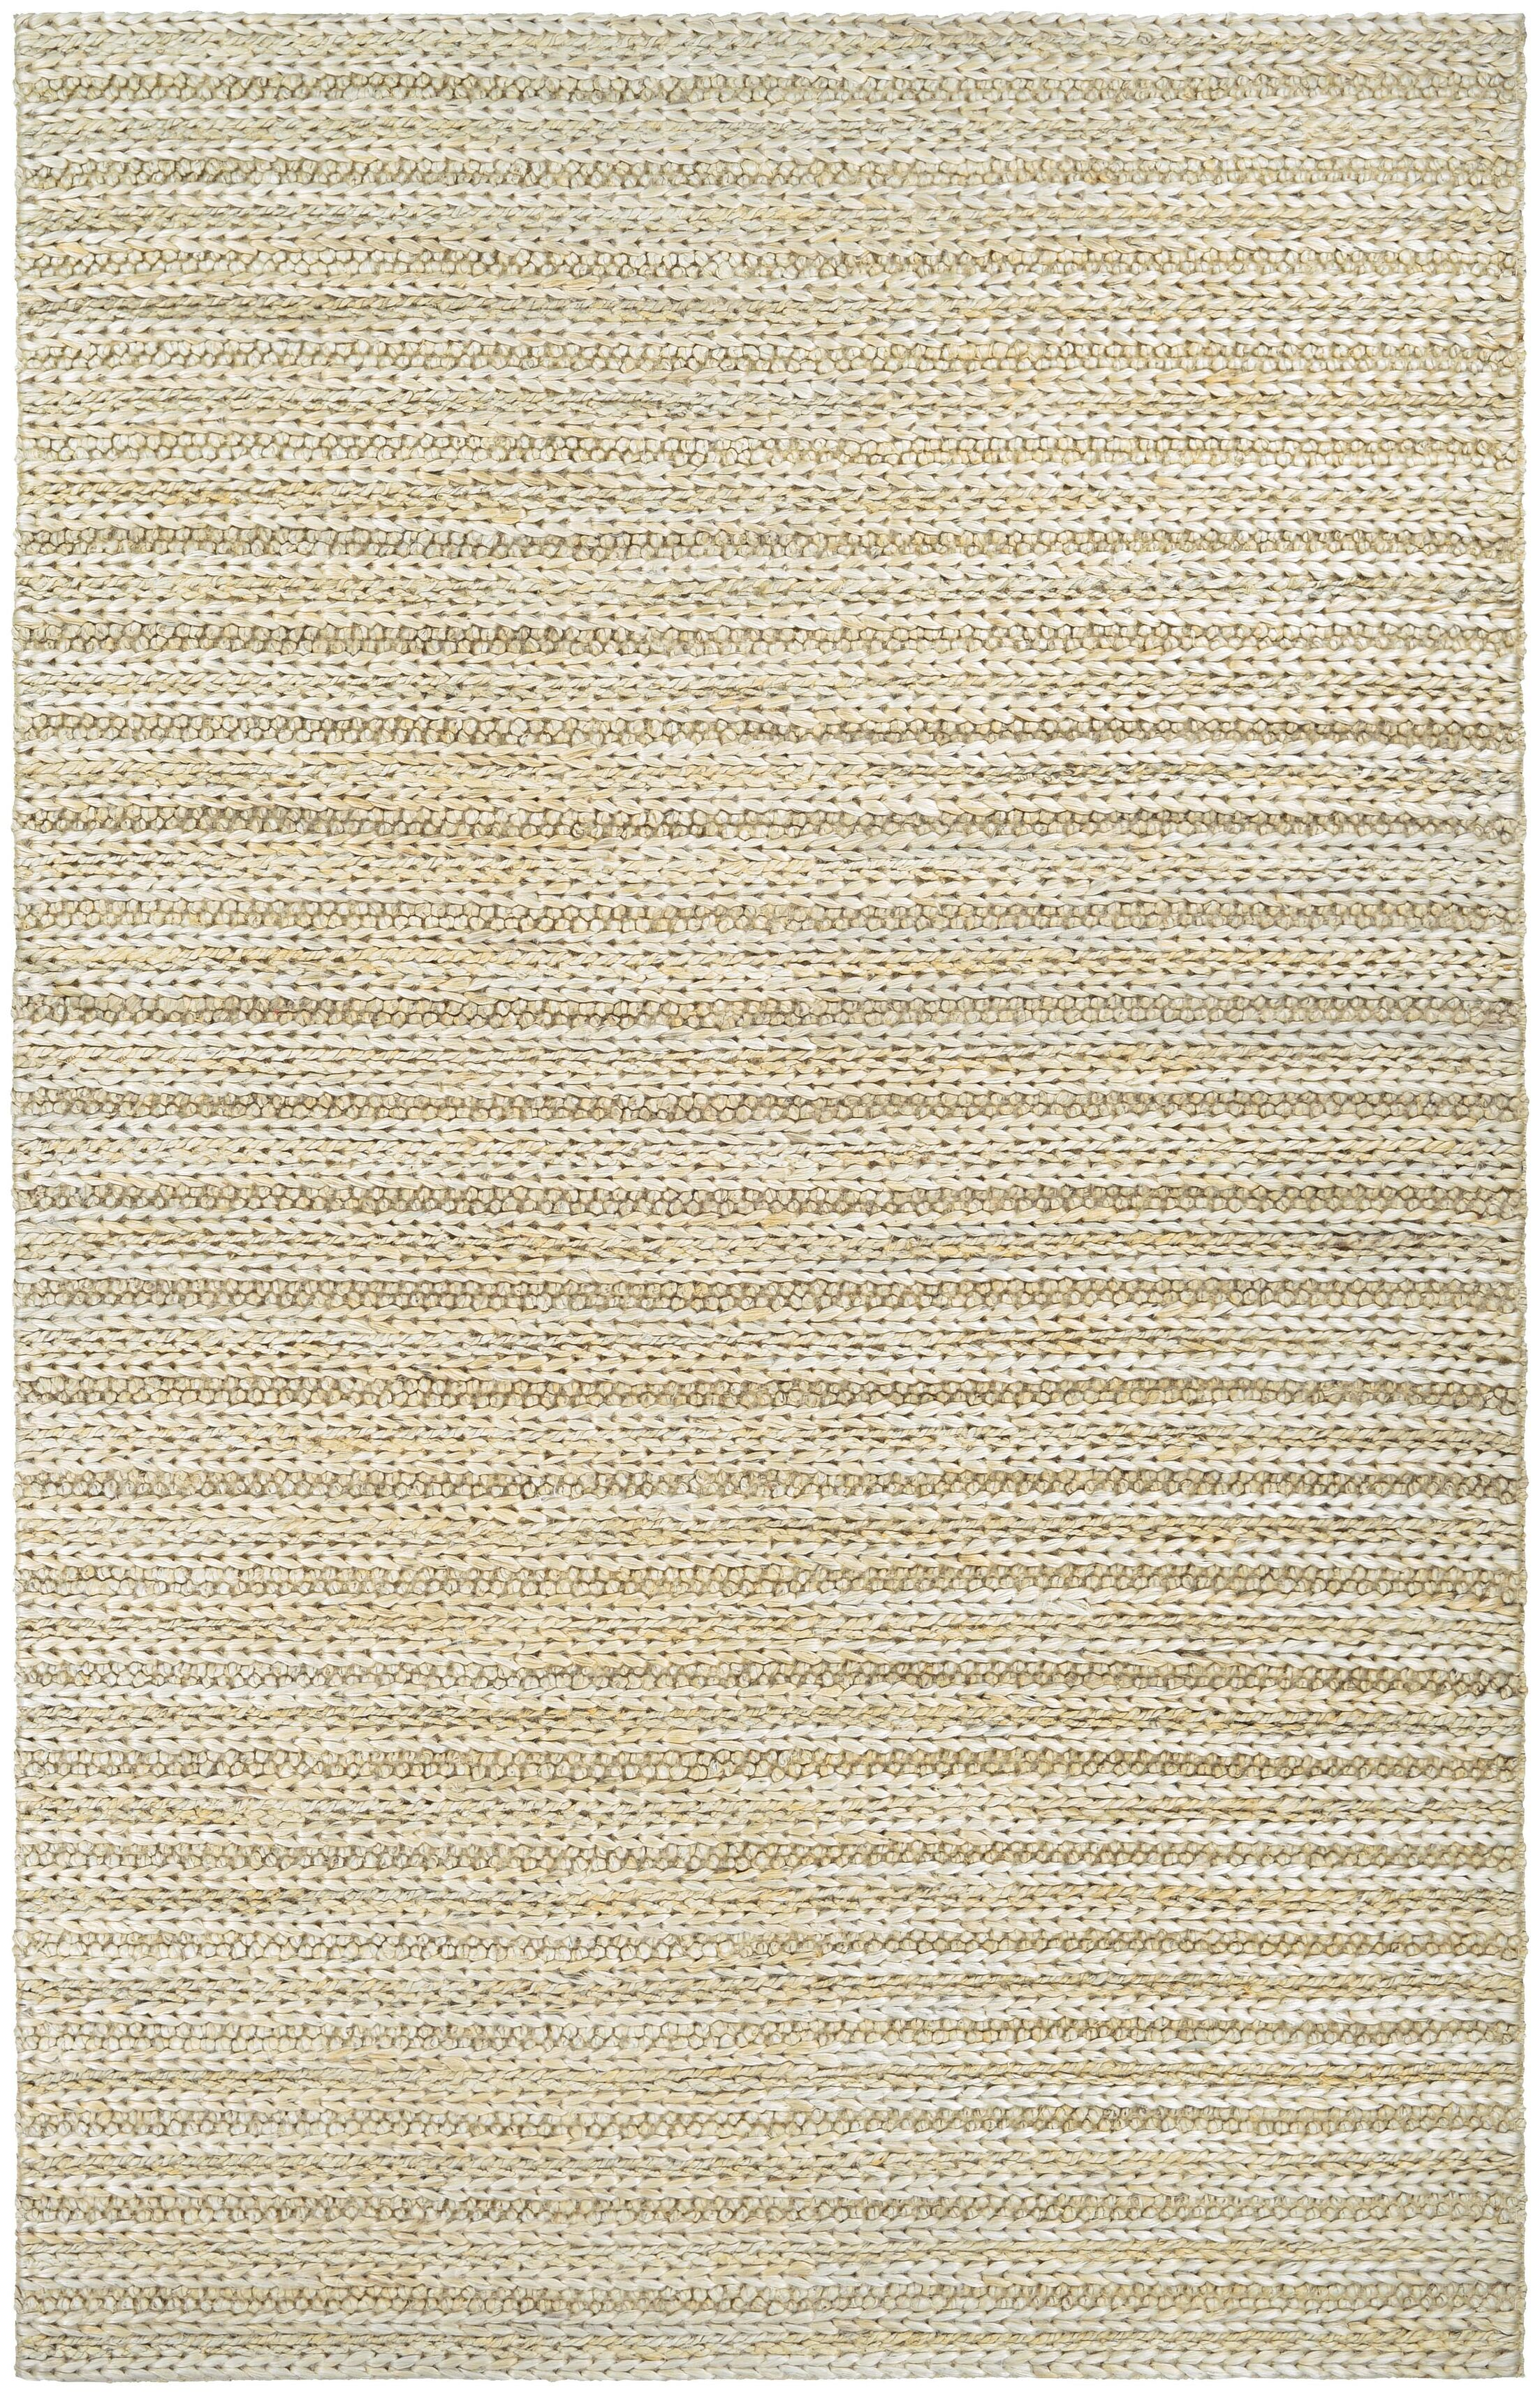 Susanville Hand-Crafted Area Rug Rug Size: Rectangle 9'6